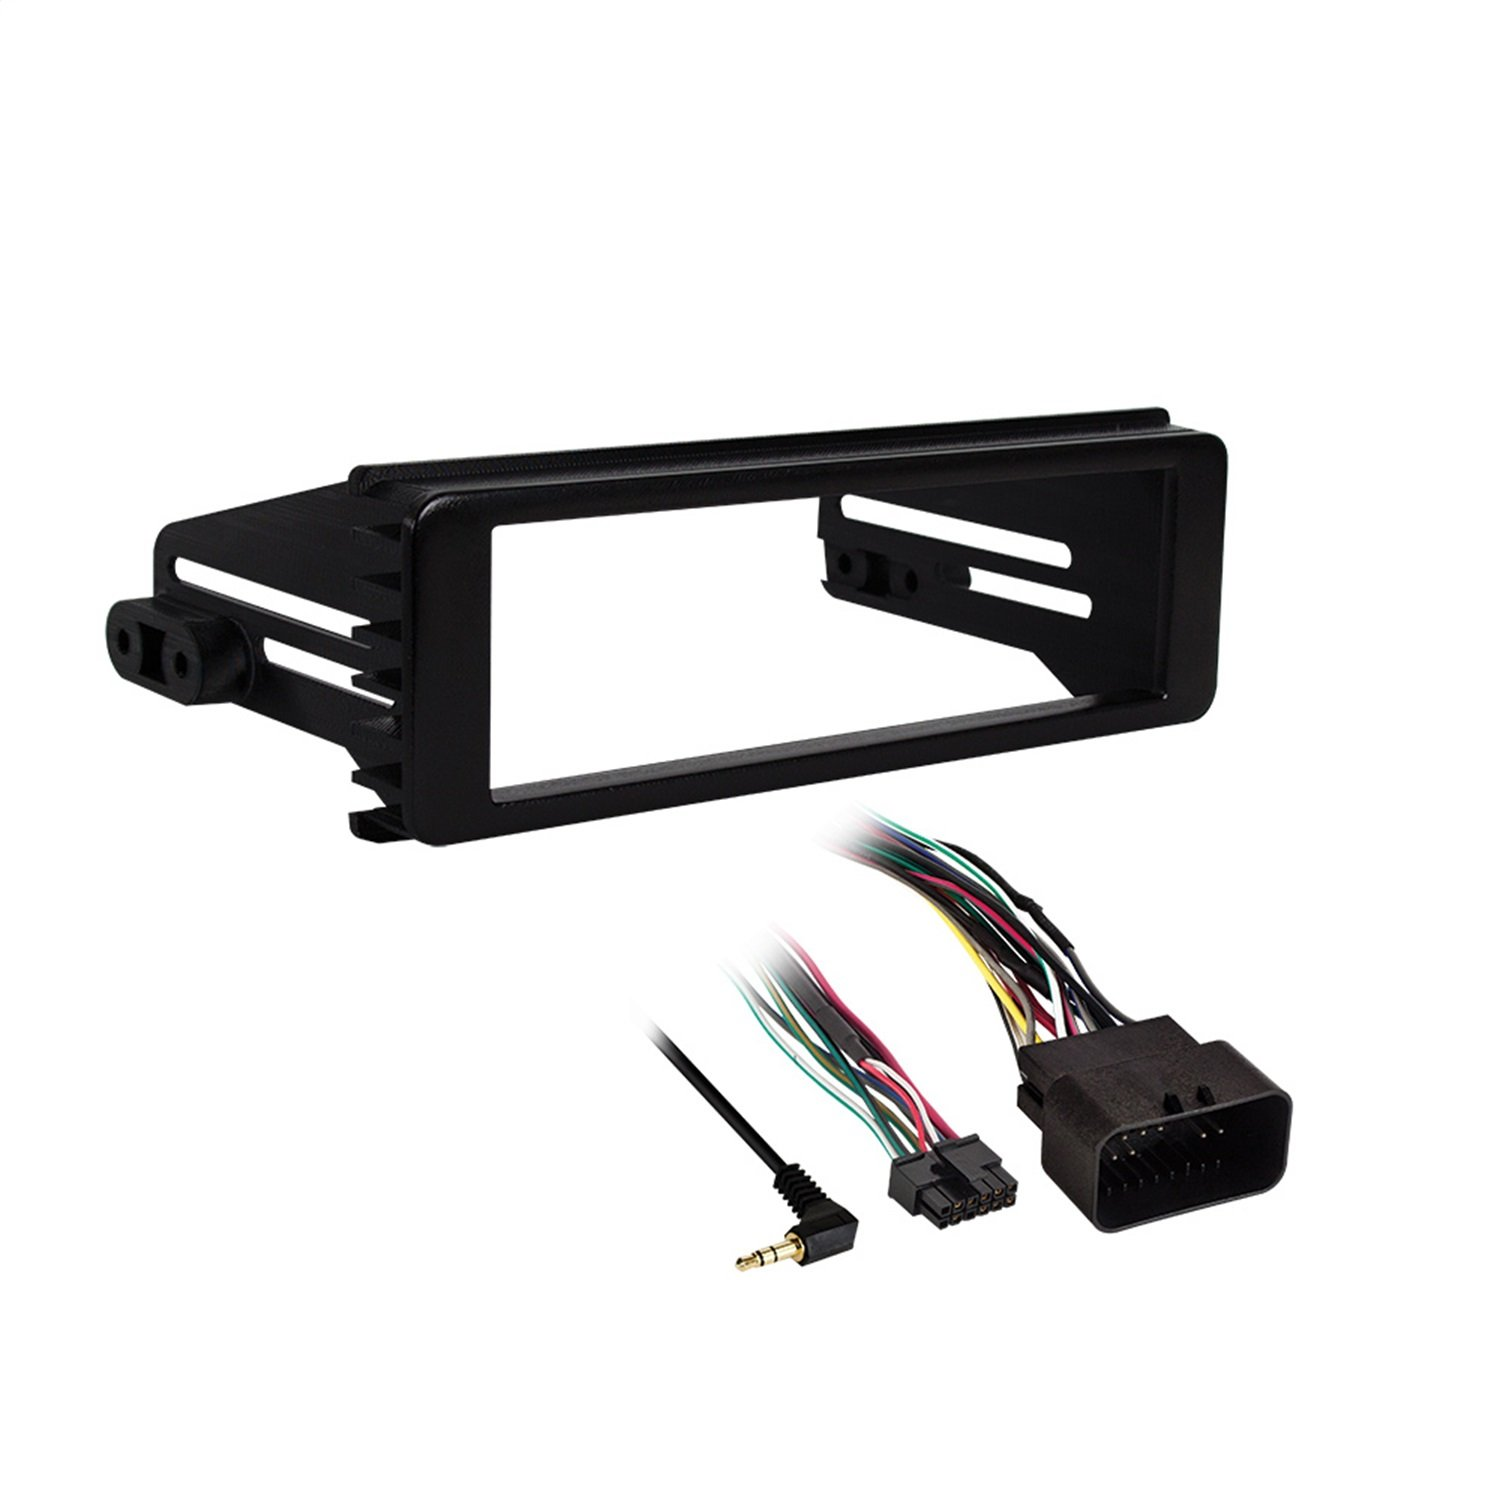 Metra 99-9600 Stereo Installation Kit for Select 1998-2013 Harley Davidson Motorcycles (Black)